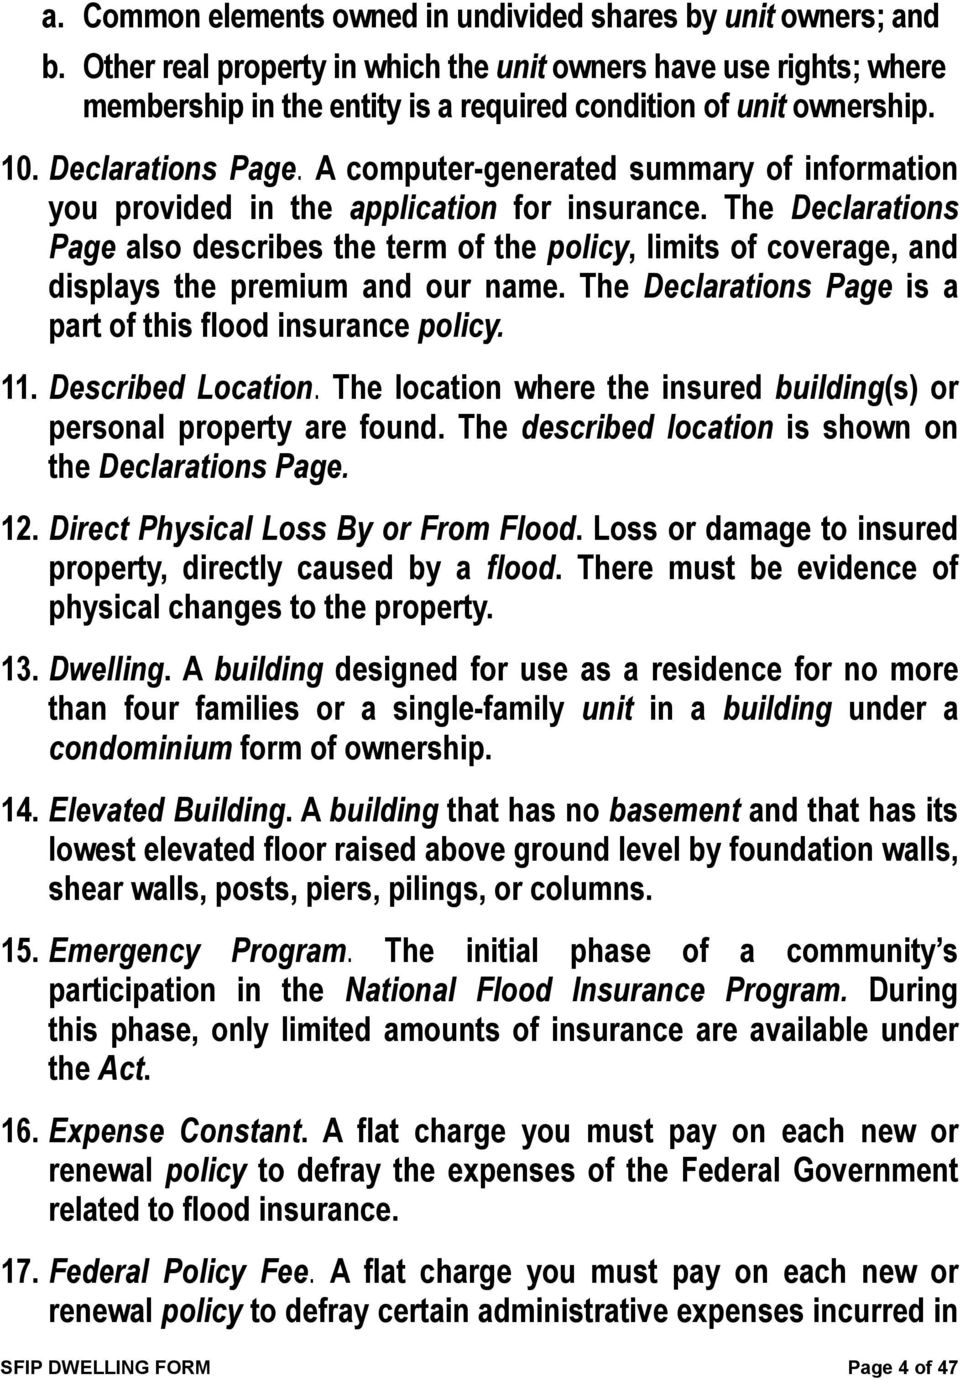 A computer-generated summary of information you provided in the application for insurance.